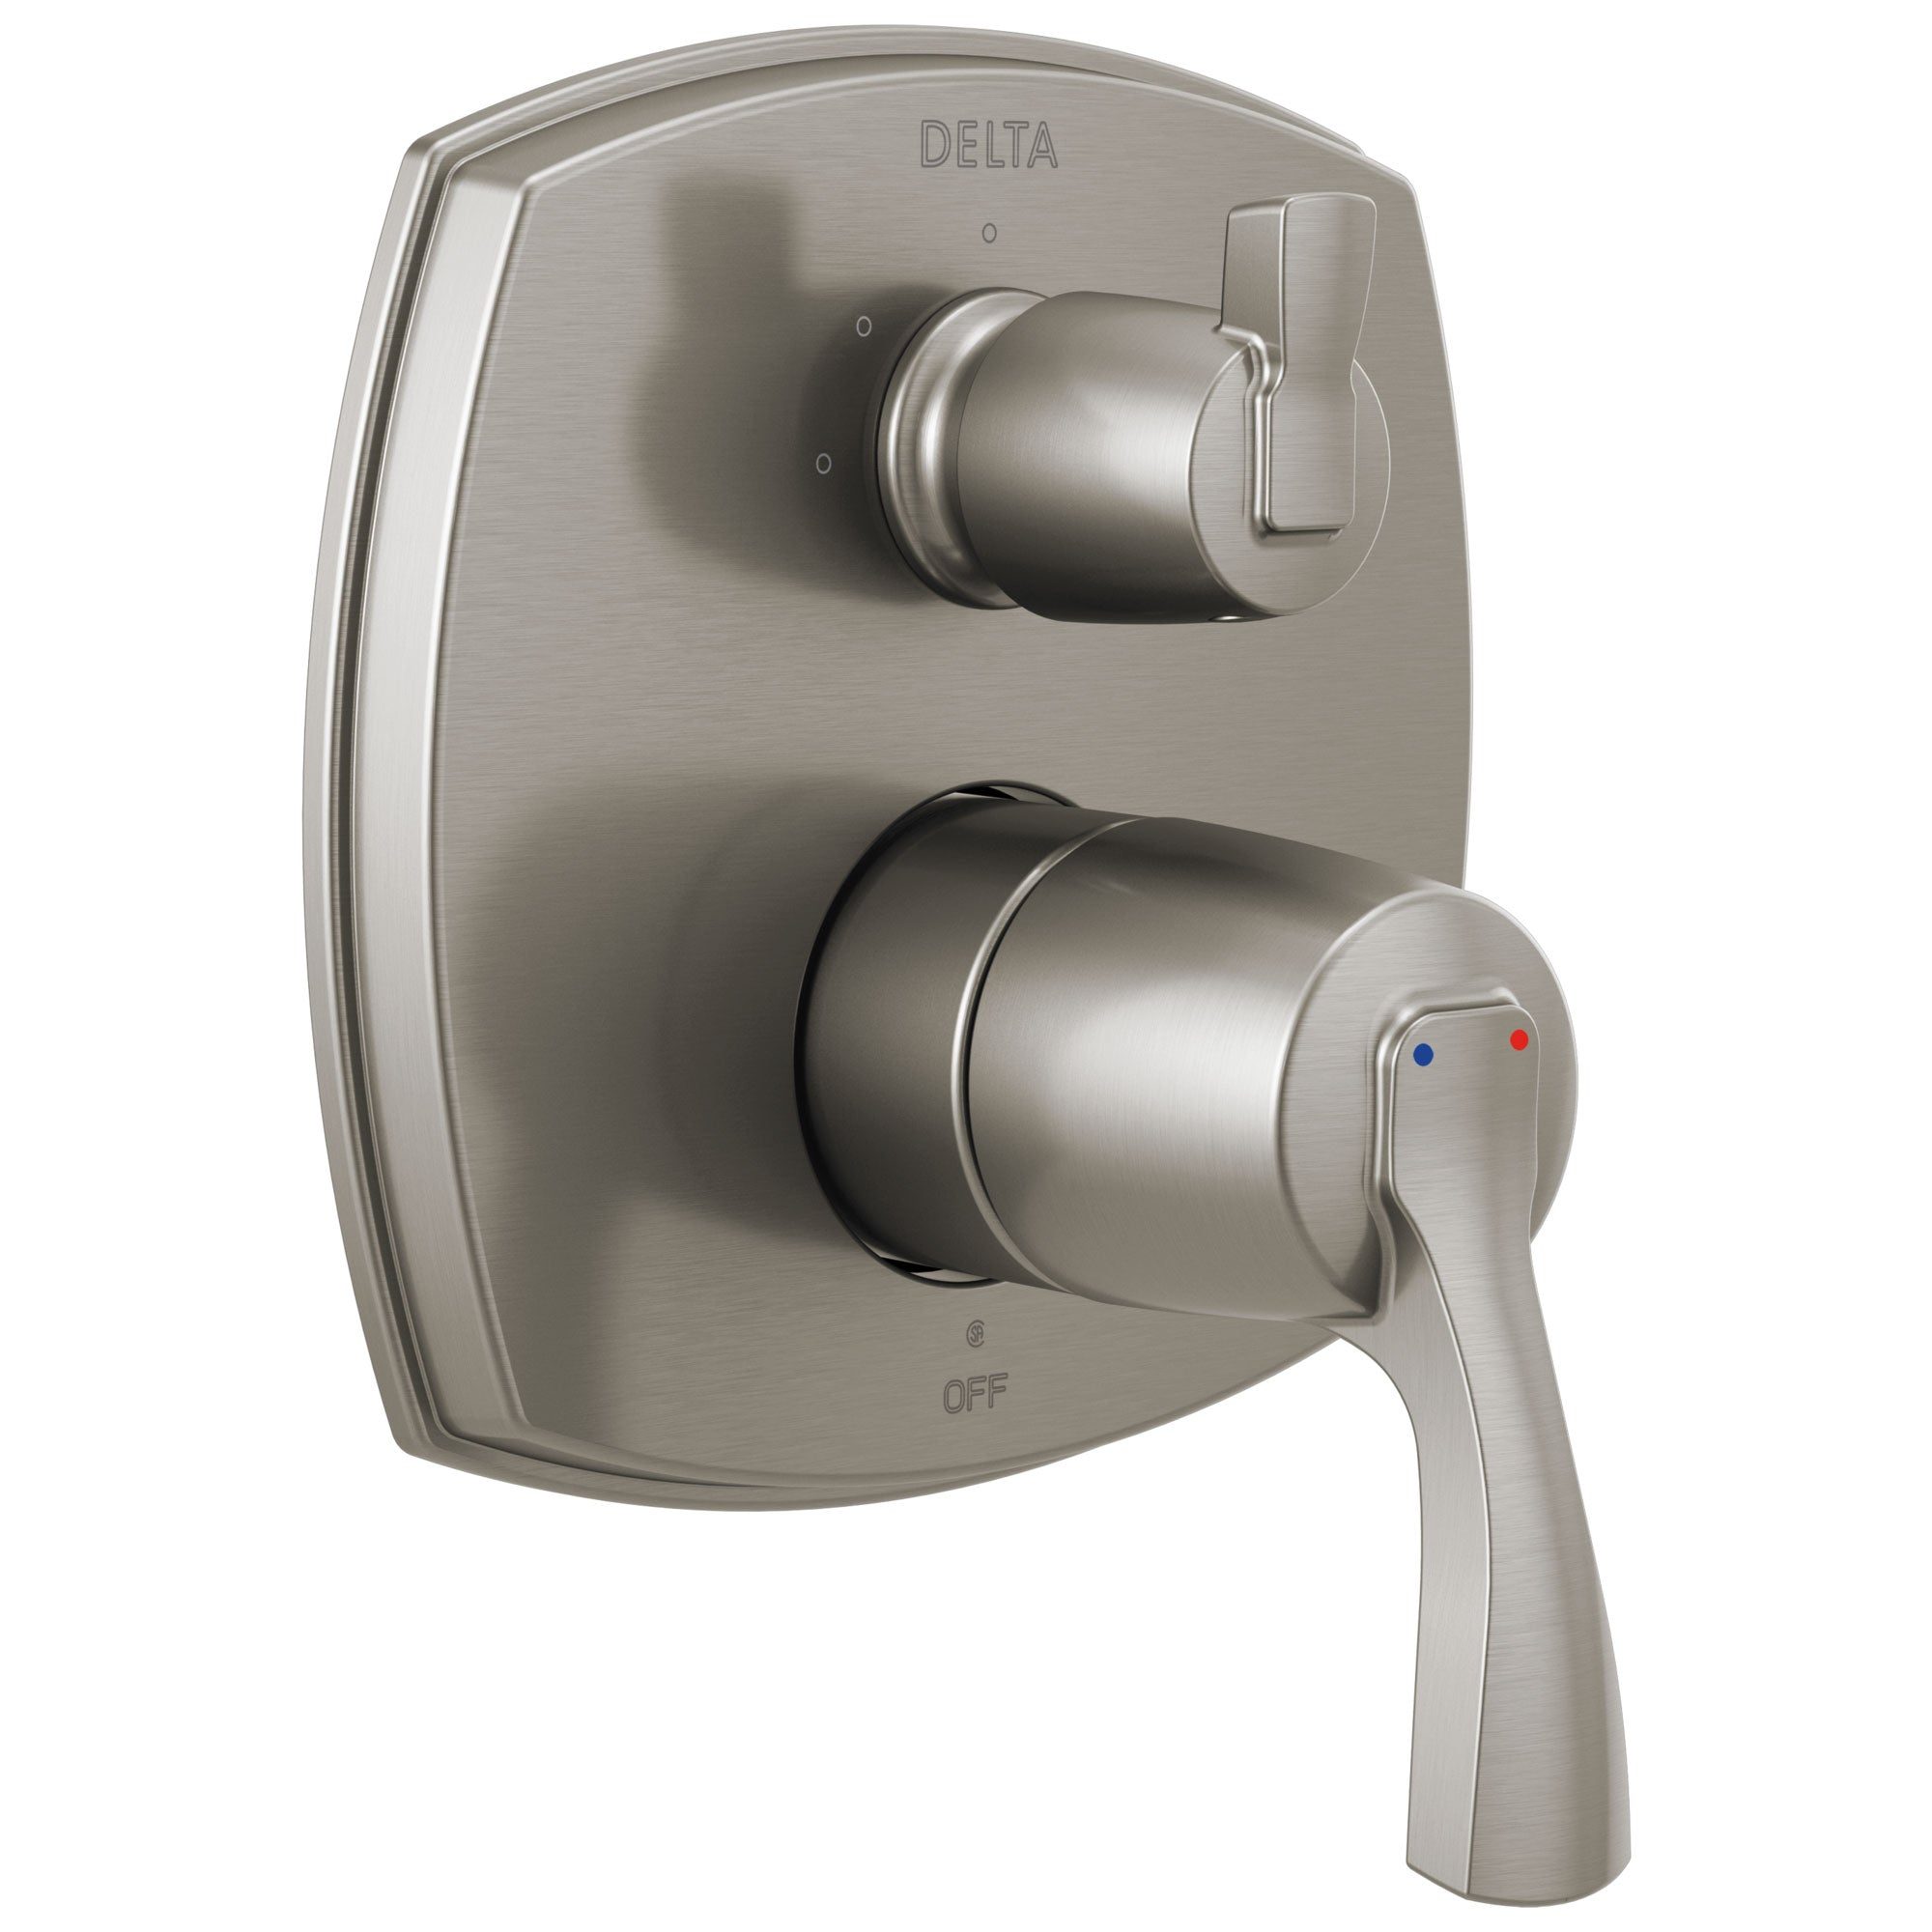 Delta Stryke Stainless Steel Finish 14 Series Shower System Control with 3 Function Integrated Lever Handle Diverter Includes Valve and Handles D3194V